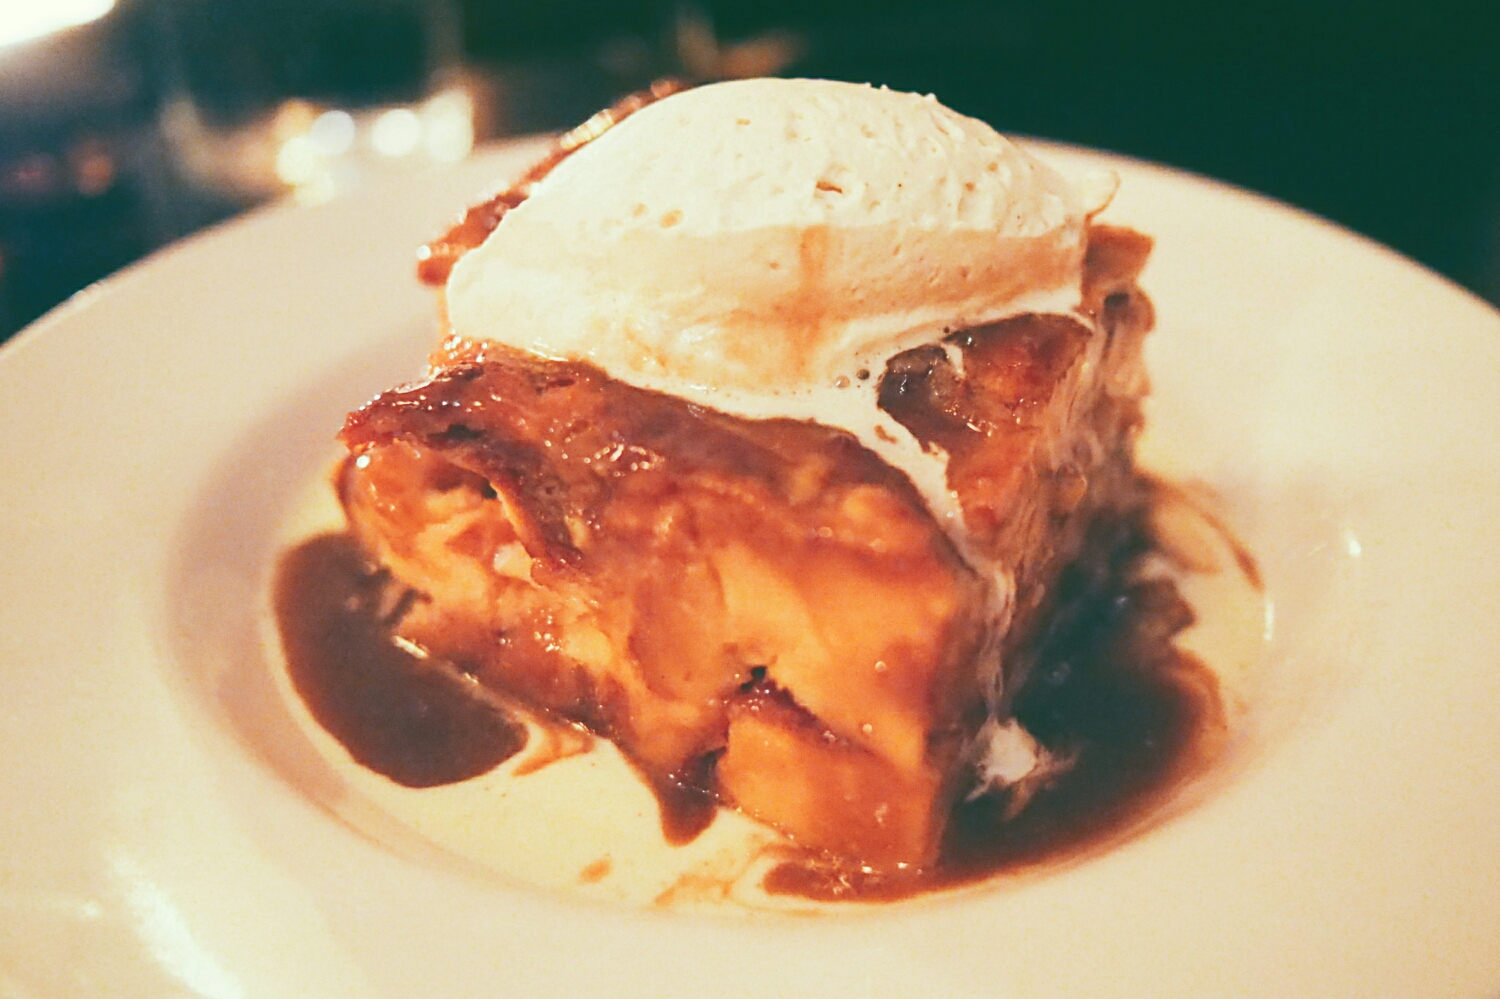 brioche bread pudding  with creme anglaise, cinnamon caramel and whipped cream.